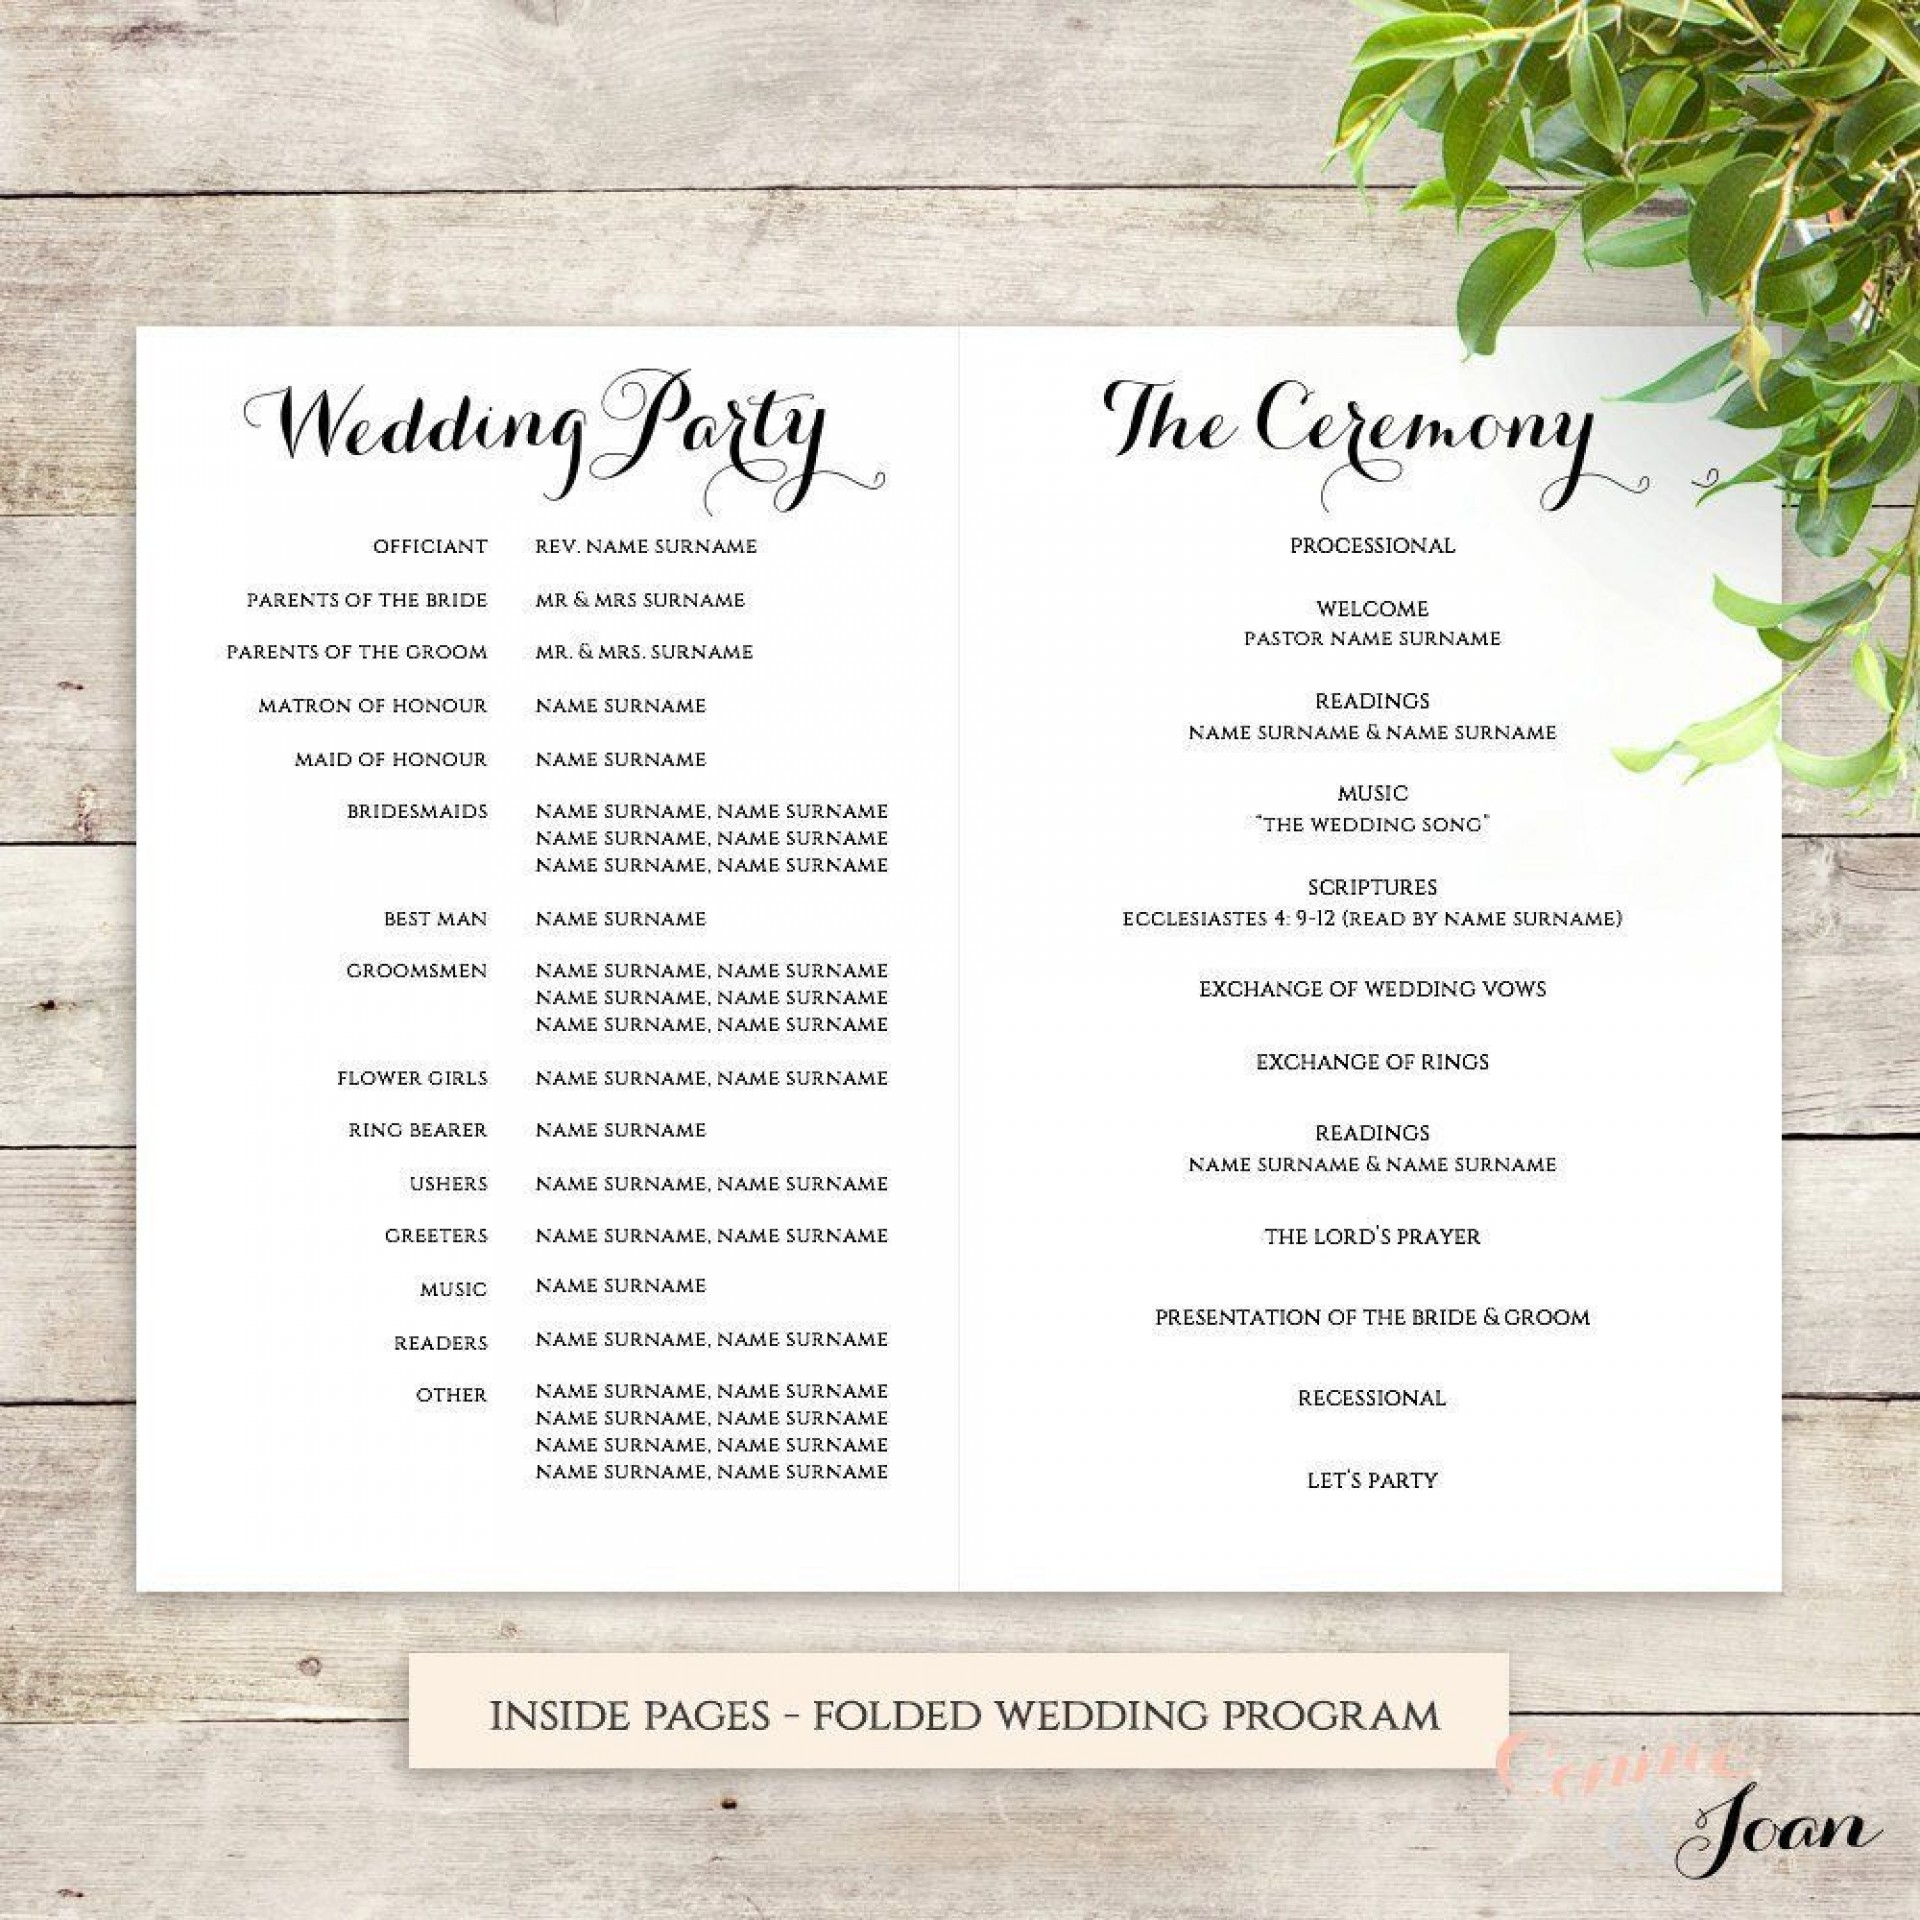 000 Best Traditional Wedding Order Of Service Template Uk Image 1920